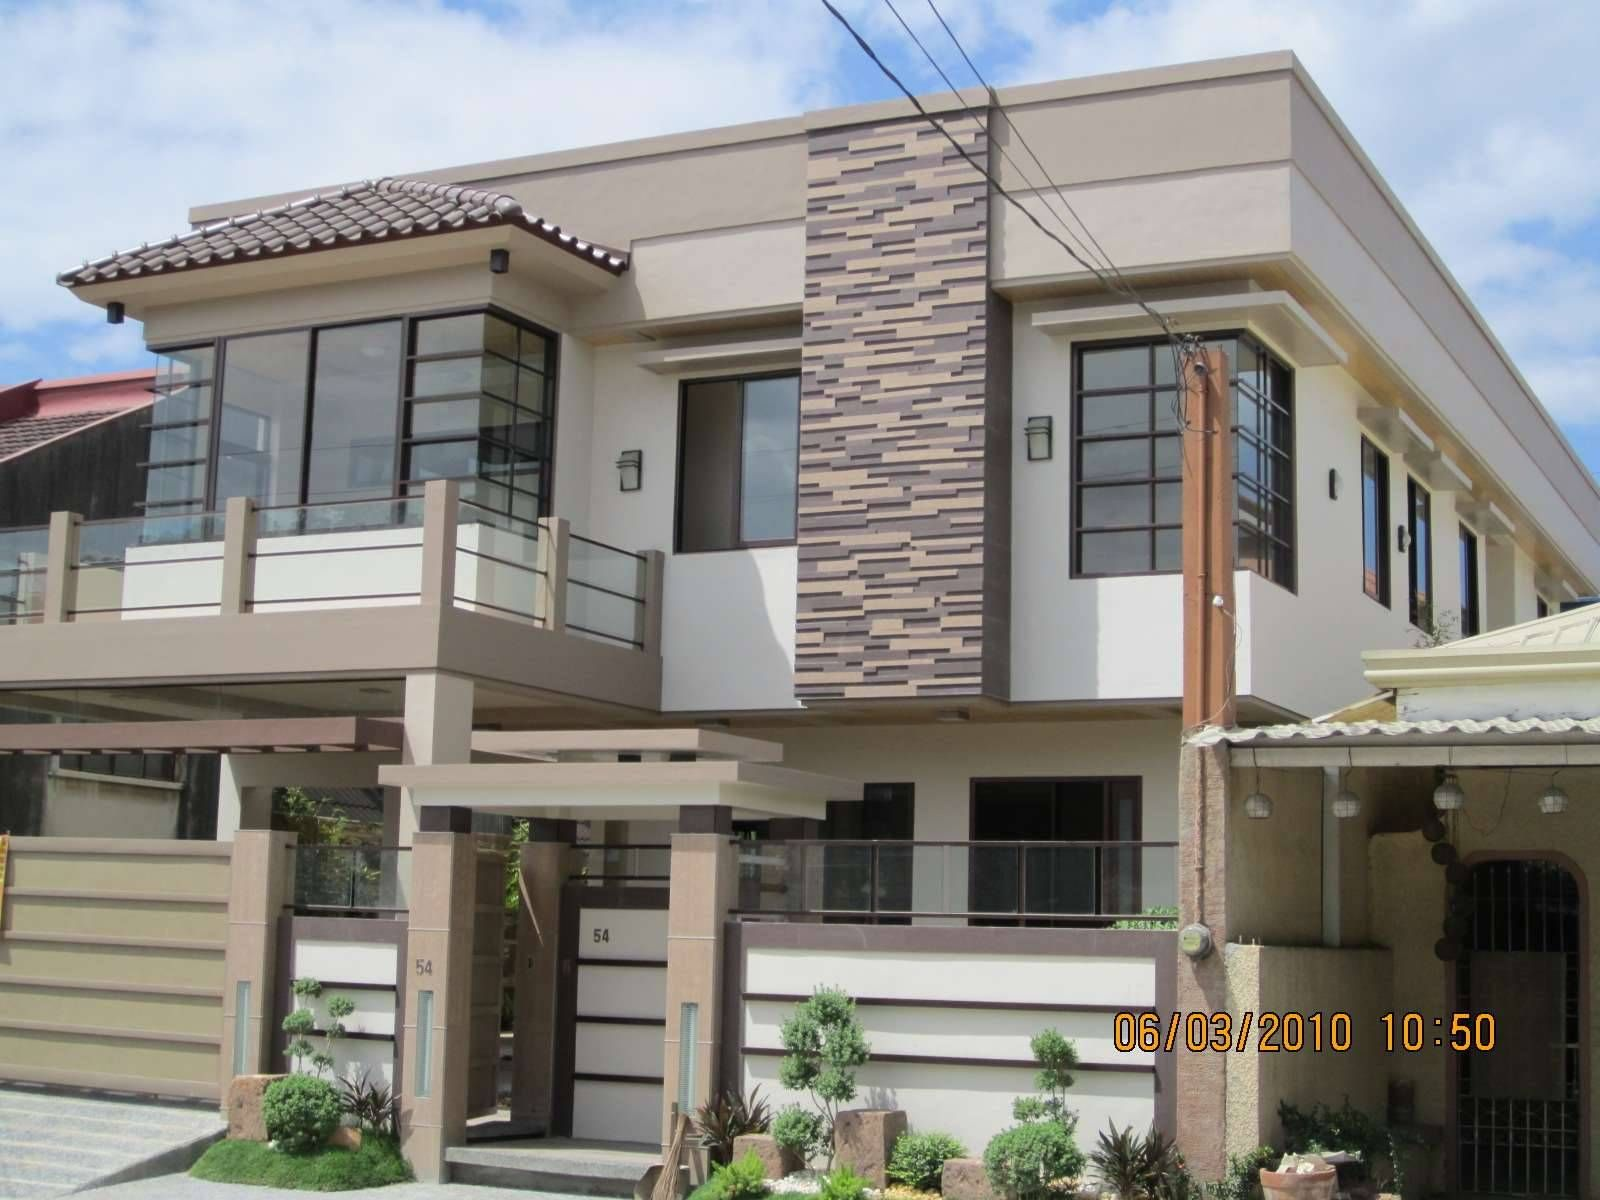 Philippines modern house exterior design dream house for Philippine houses design pictures